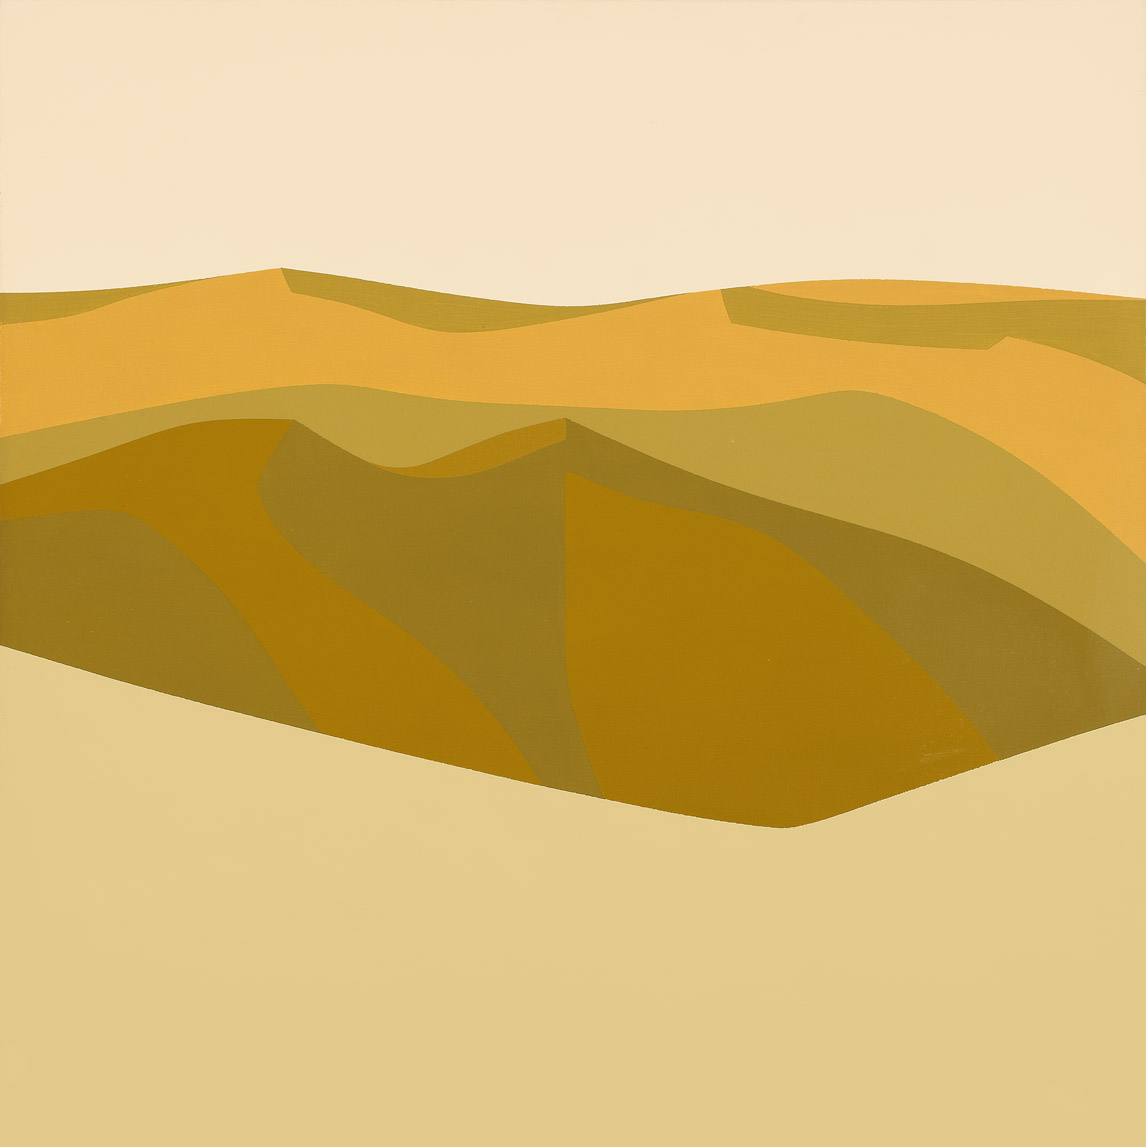 Desert Hills , 1967  acrylic on canvas 40 x 40 inches; 101.6 x 101.6 centimeters